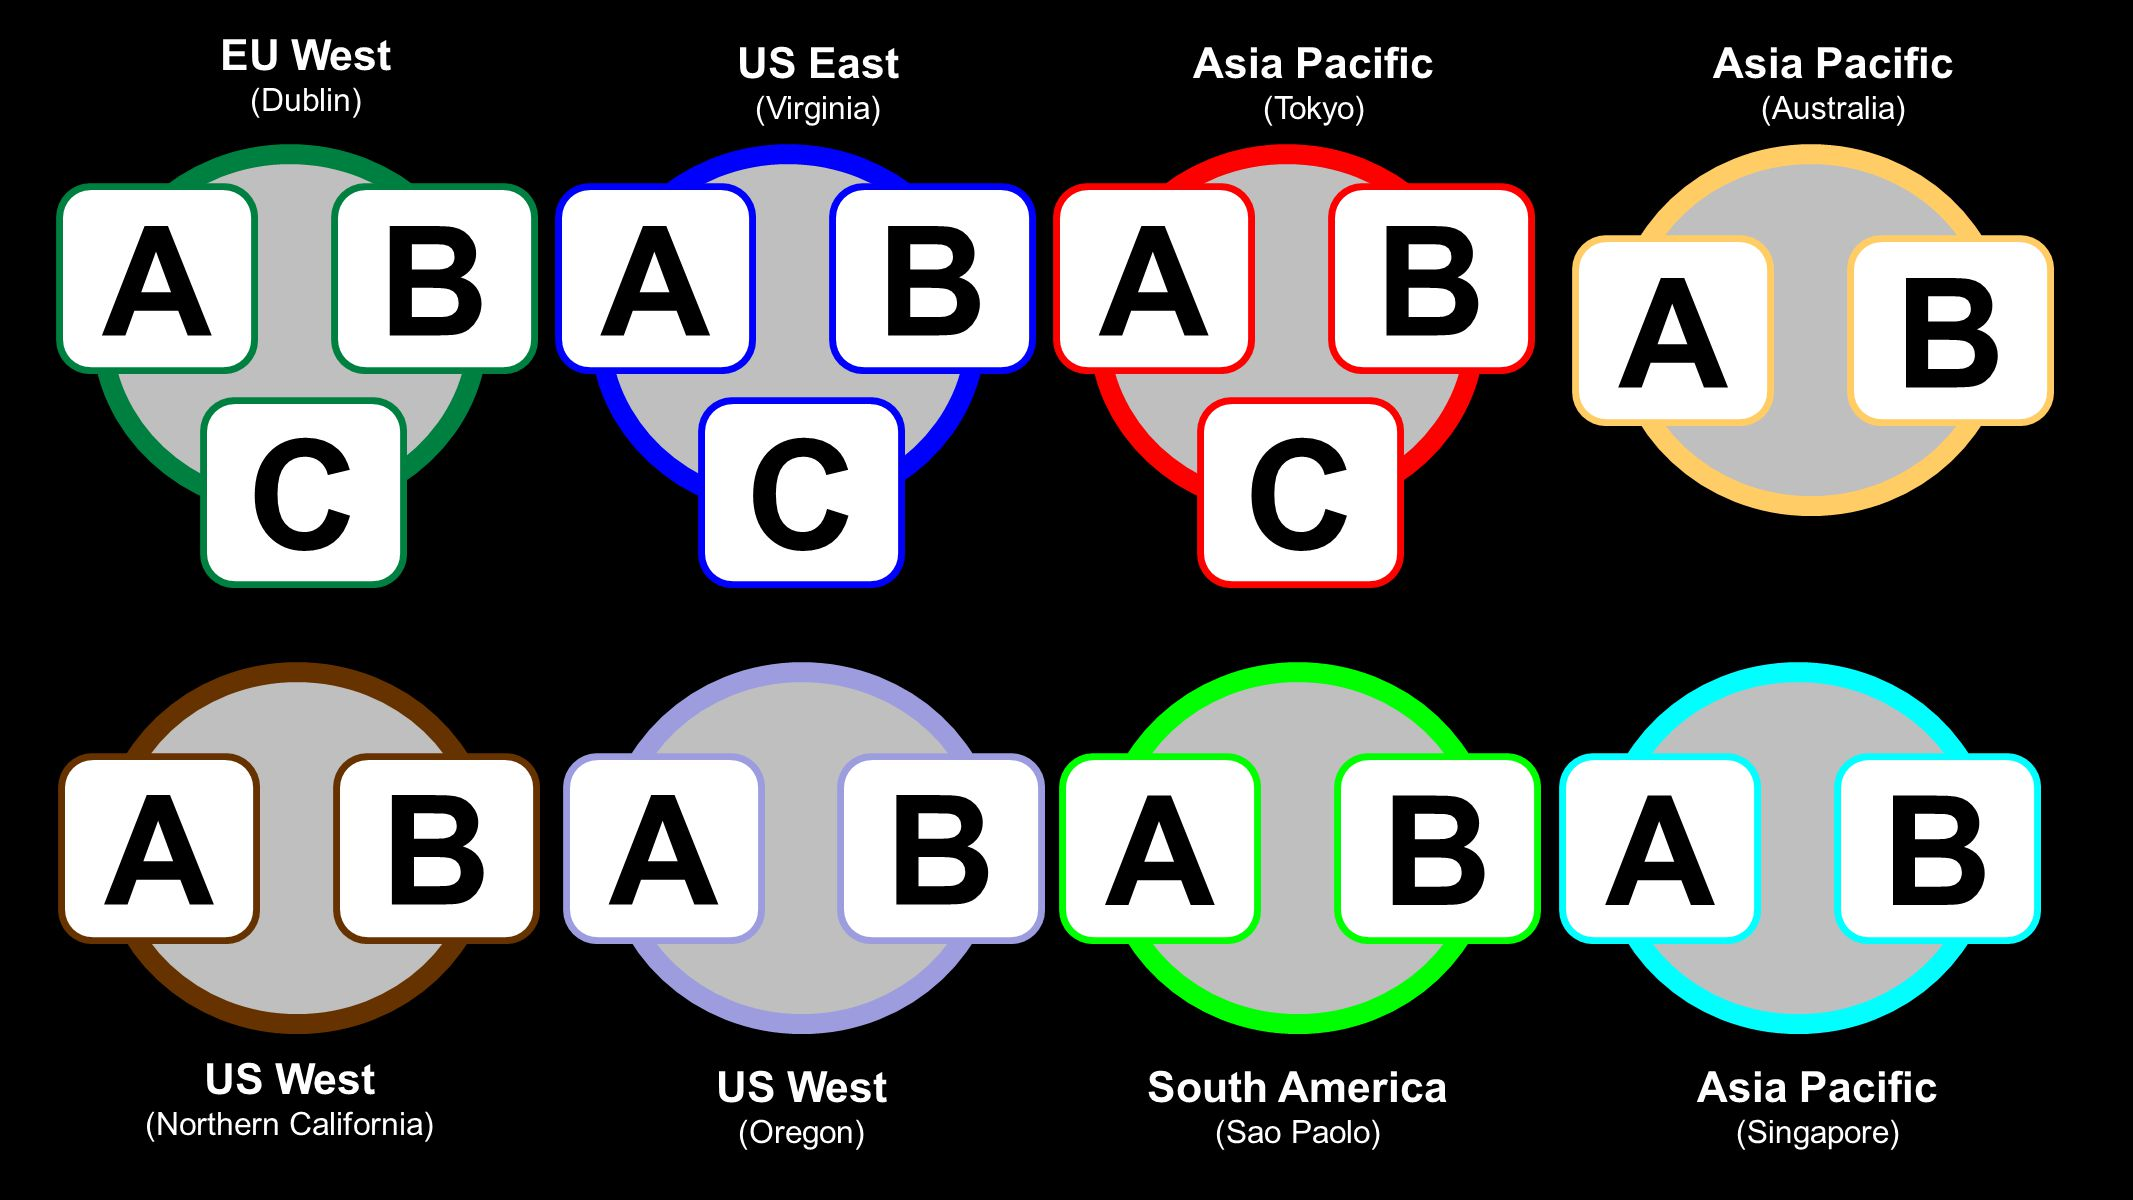 AB AB C AB C AB C ABABABAB US West (Northern California) US West (Oregon) South America (Sao Paolo) Asia Pacific (Singapore) EU West (Dublin) US East (Virginia) Asia Pacific (Tokyo) Asia Pacific (Australia)